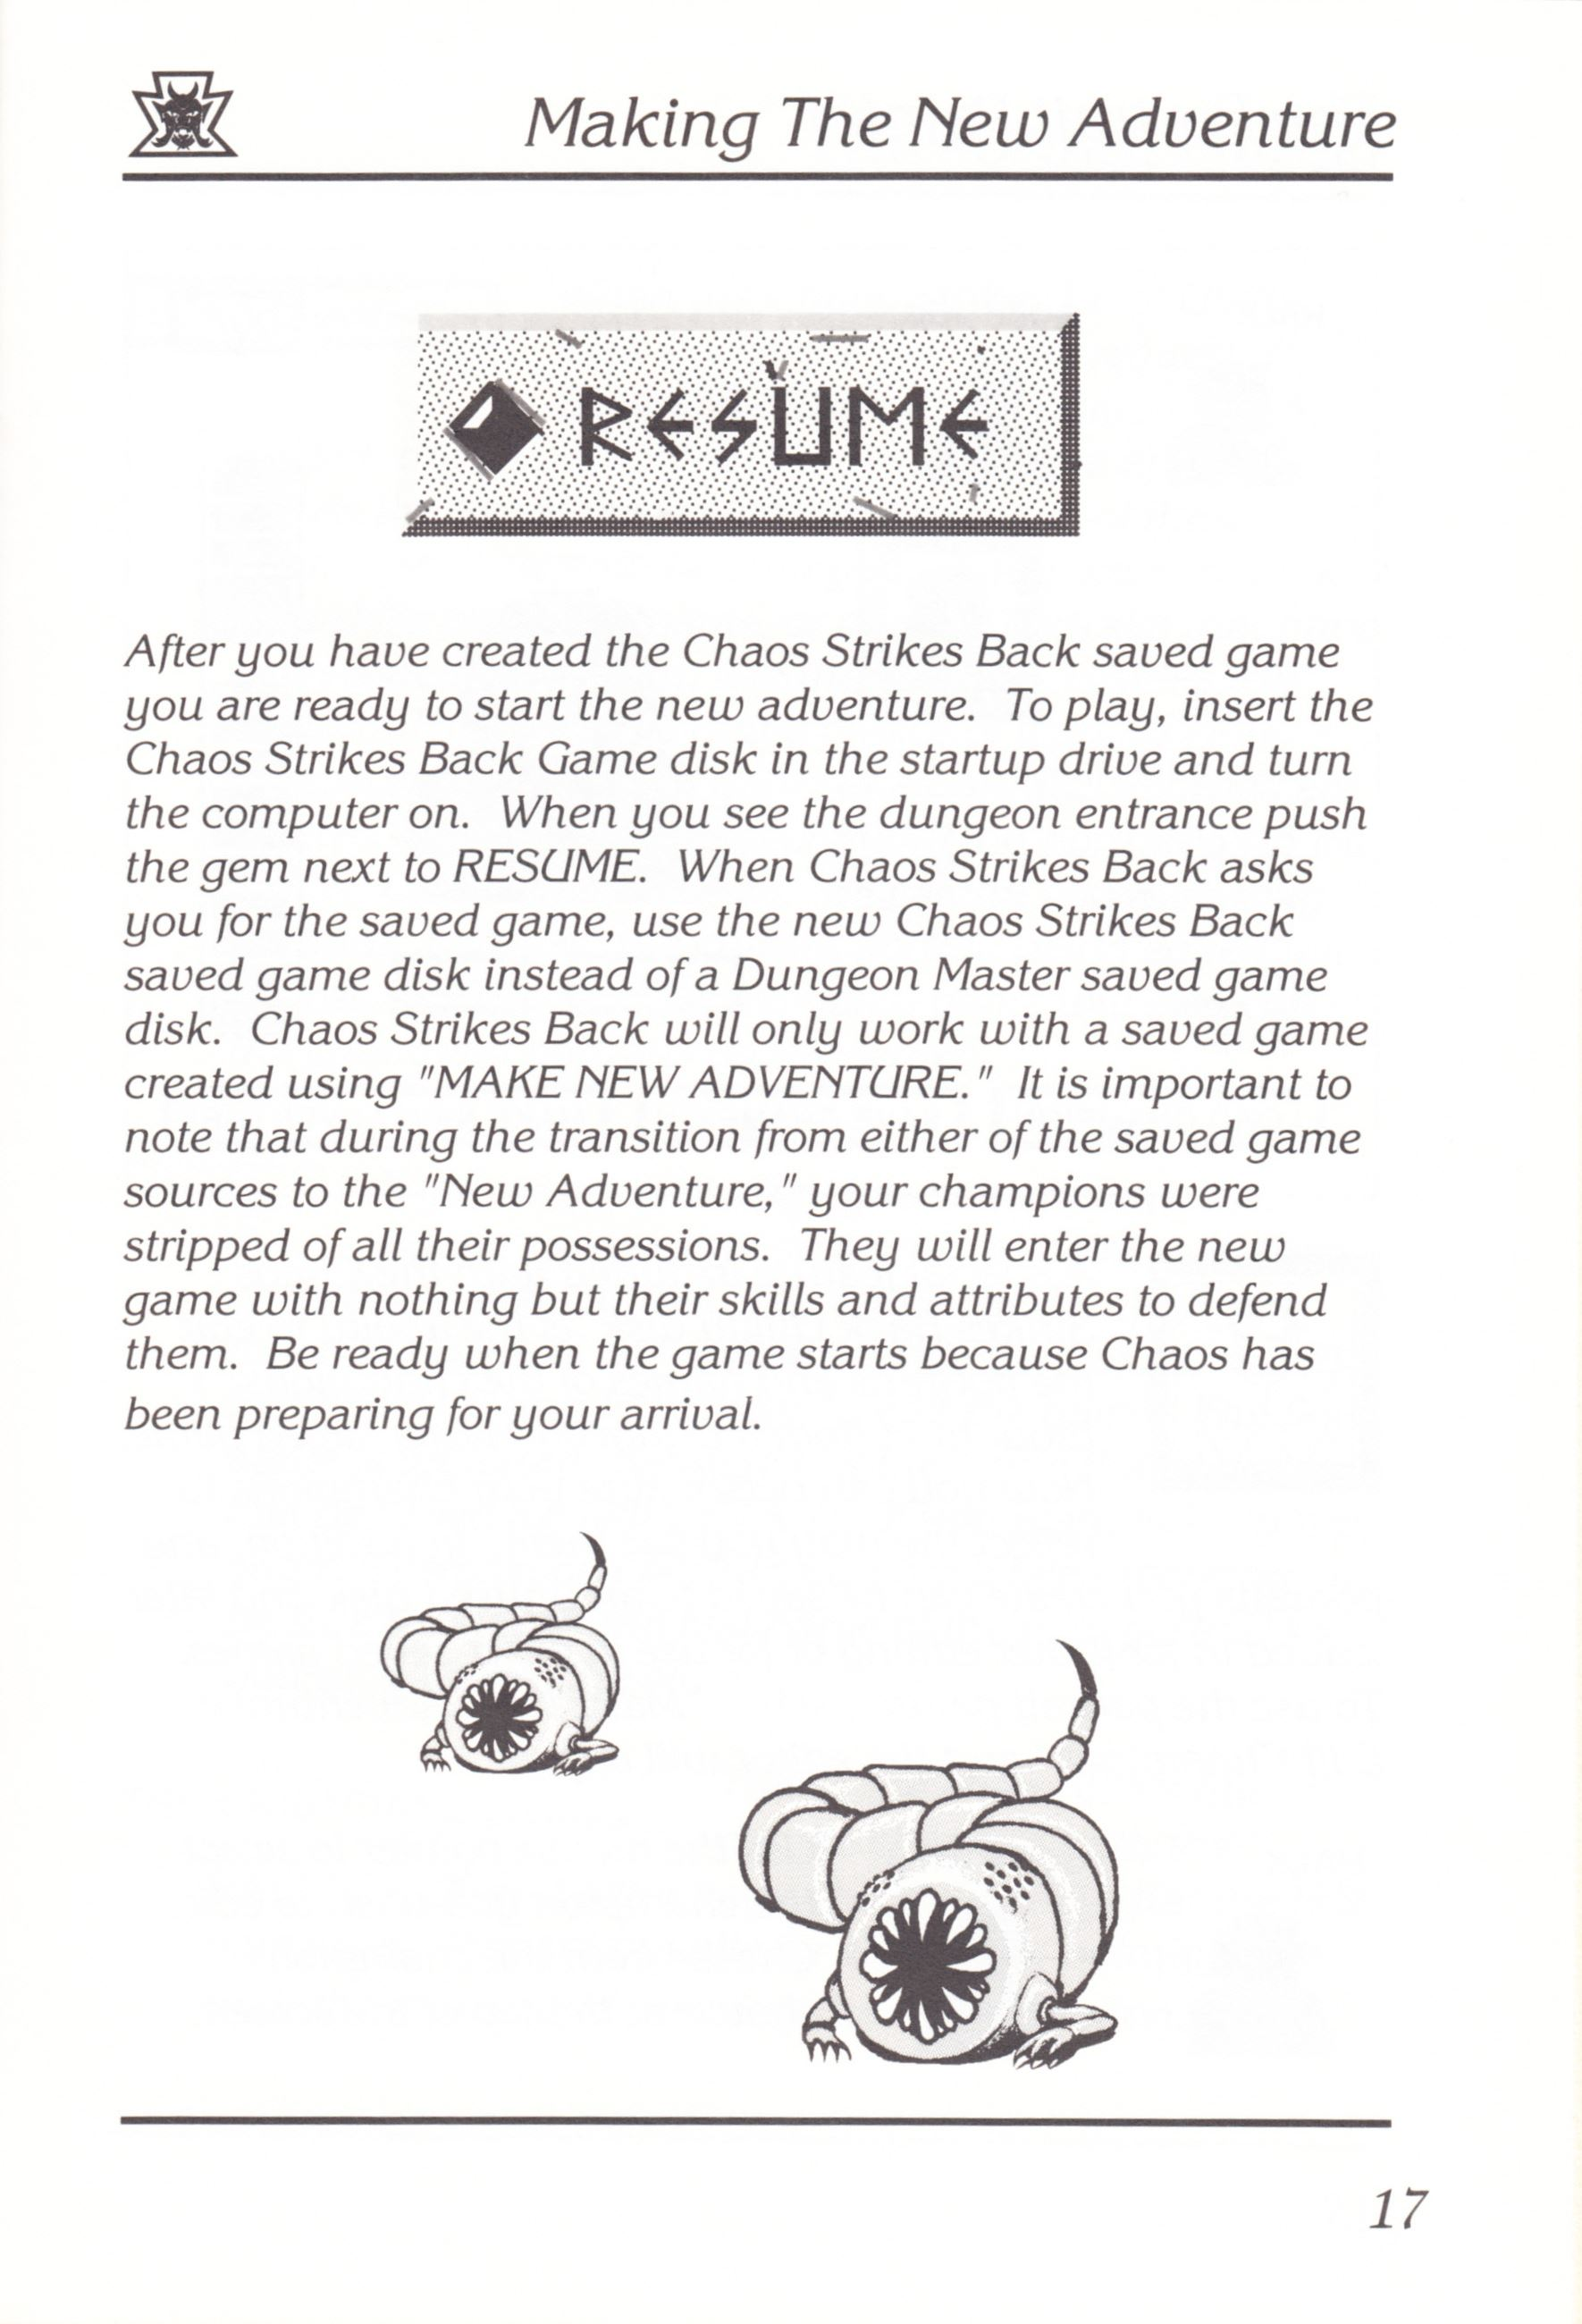 Game - Chaos Strikes Back - UK - Amiga - Manual - Page 019 - Scan